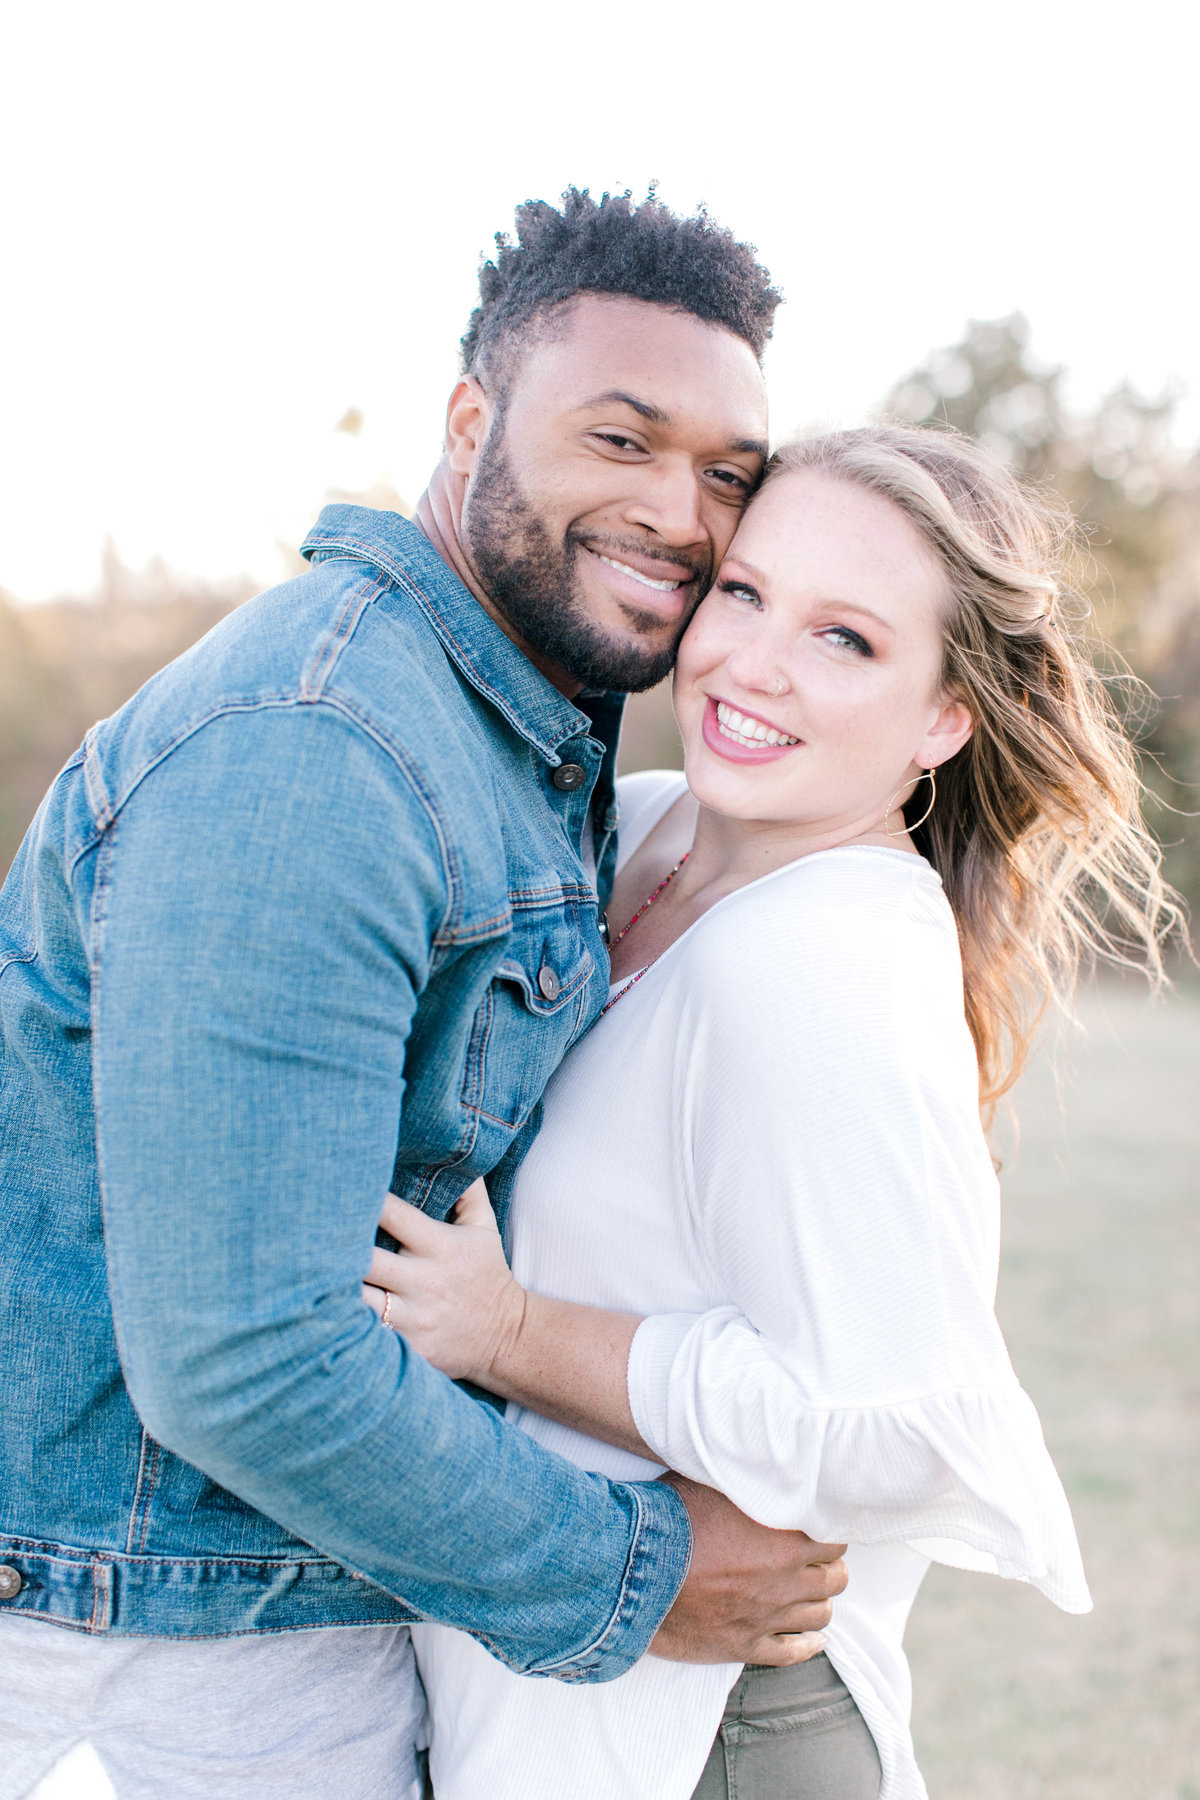 Melanie Foster Photography - Norman Oklahoma Senior and Engagement Photographer - Couple Engagement Photo - 6